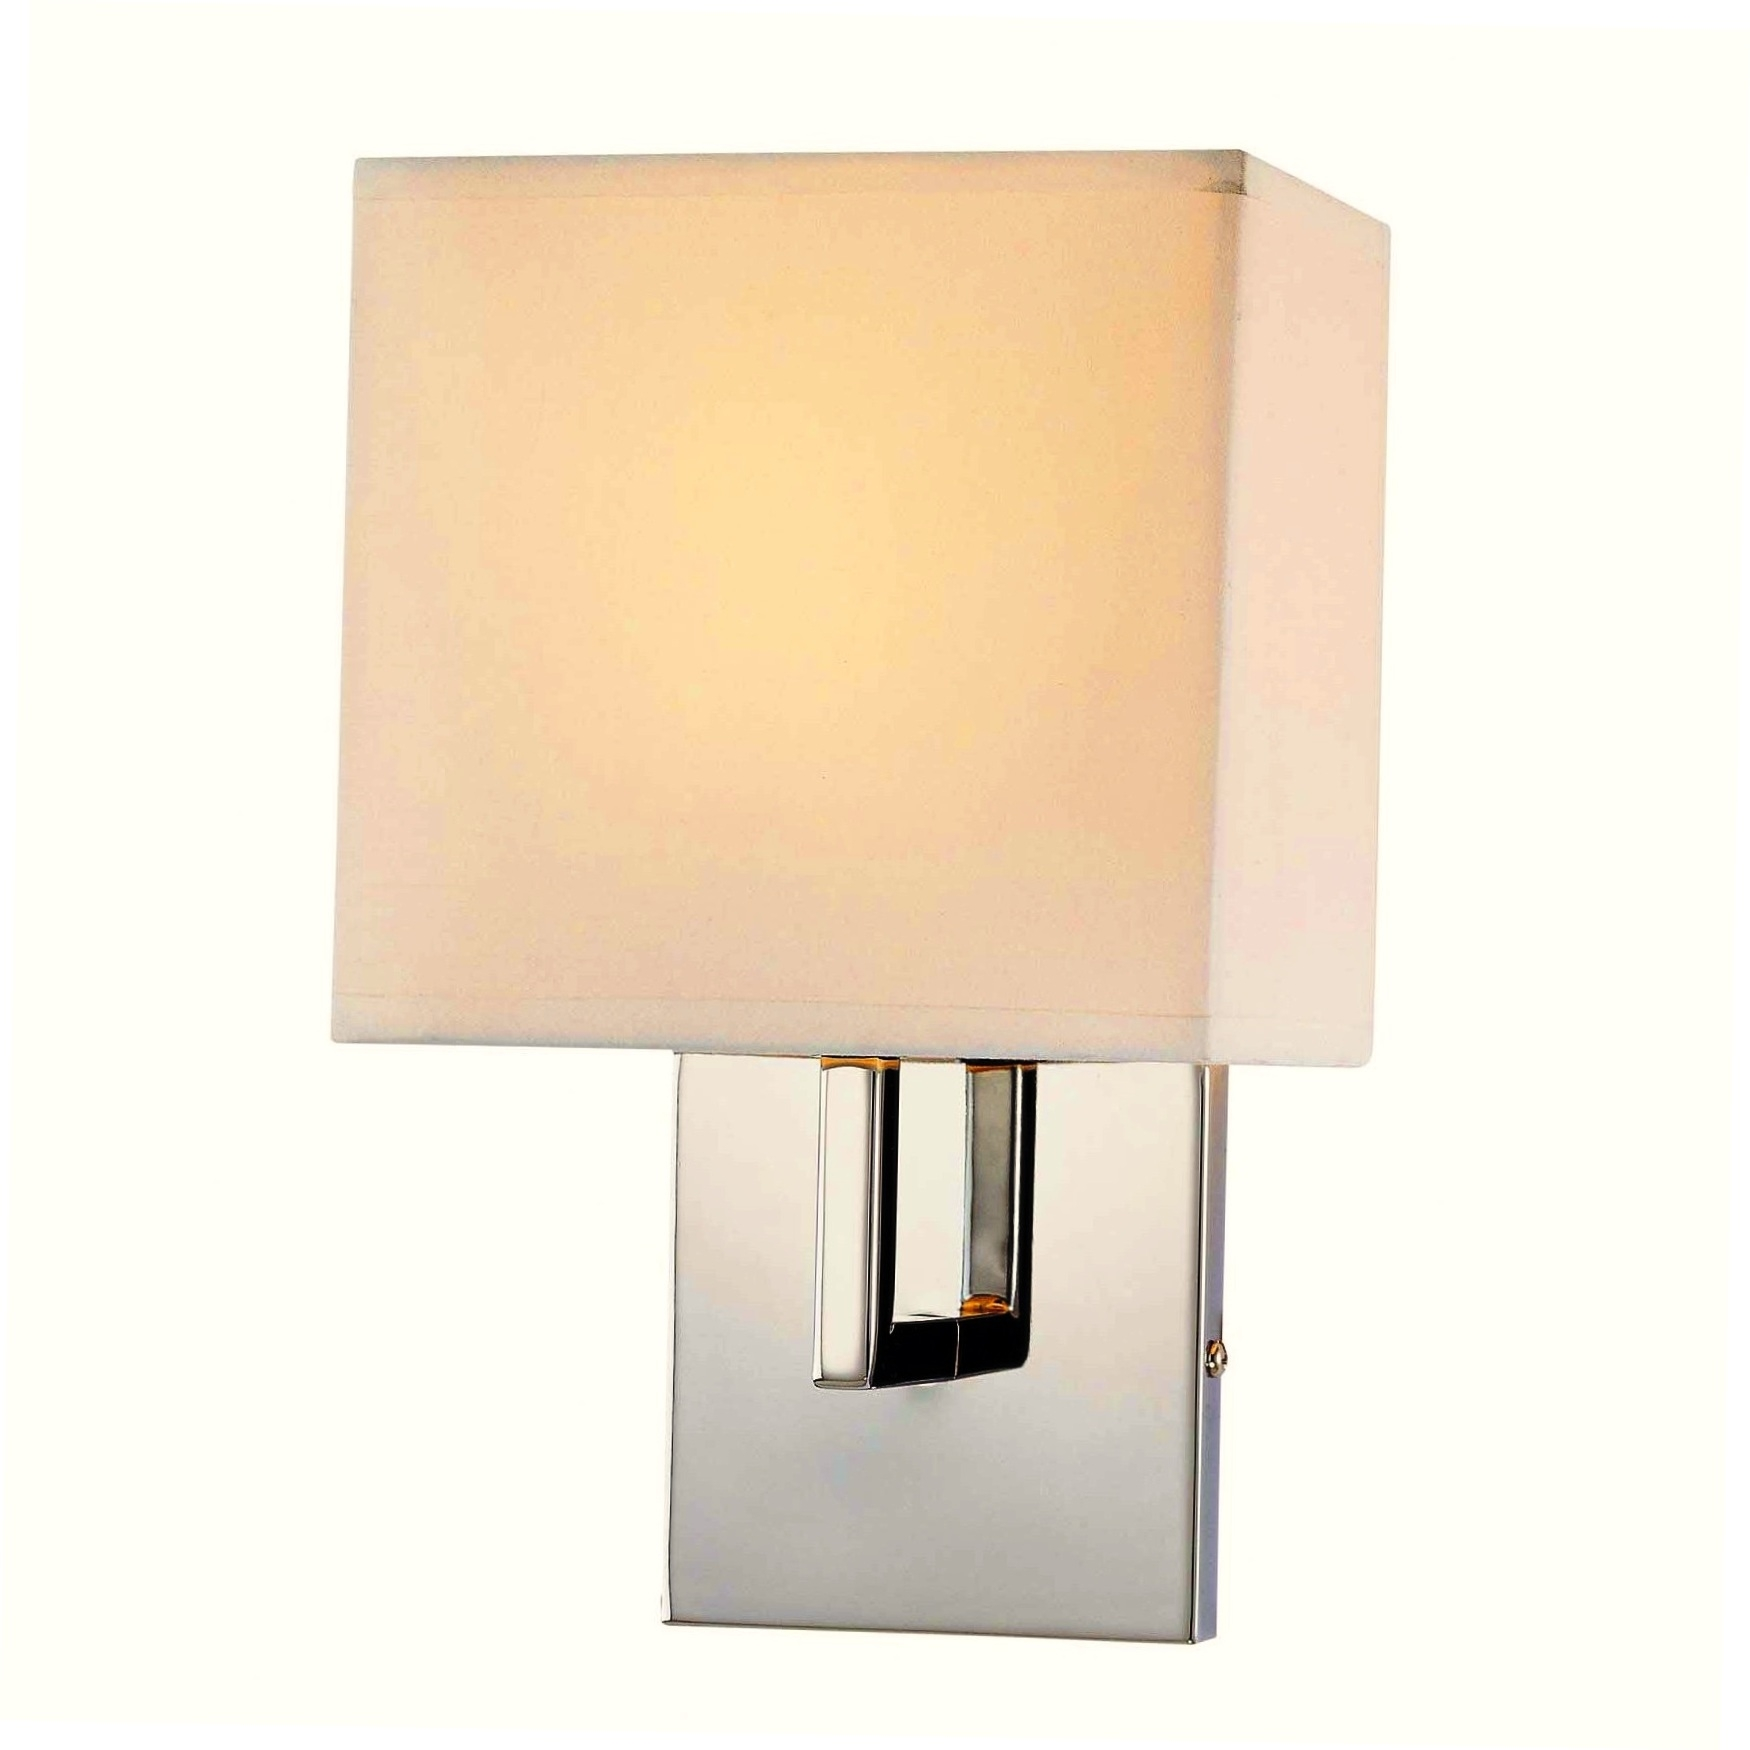 George Kovacs 1 Light Wall Sconce In Chrome L Brilliant